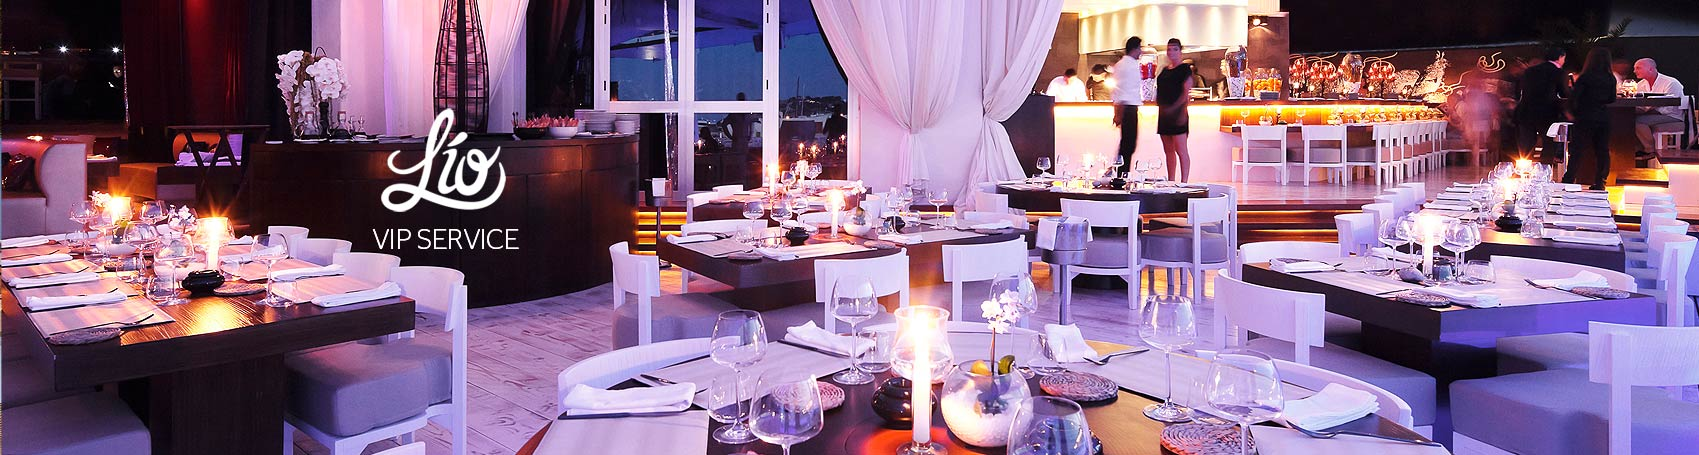 Book Vip Tables Club And Restaurant Lio Ibiza Consulting Services - Restaurant table booking